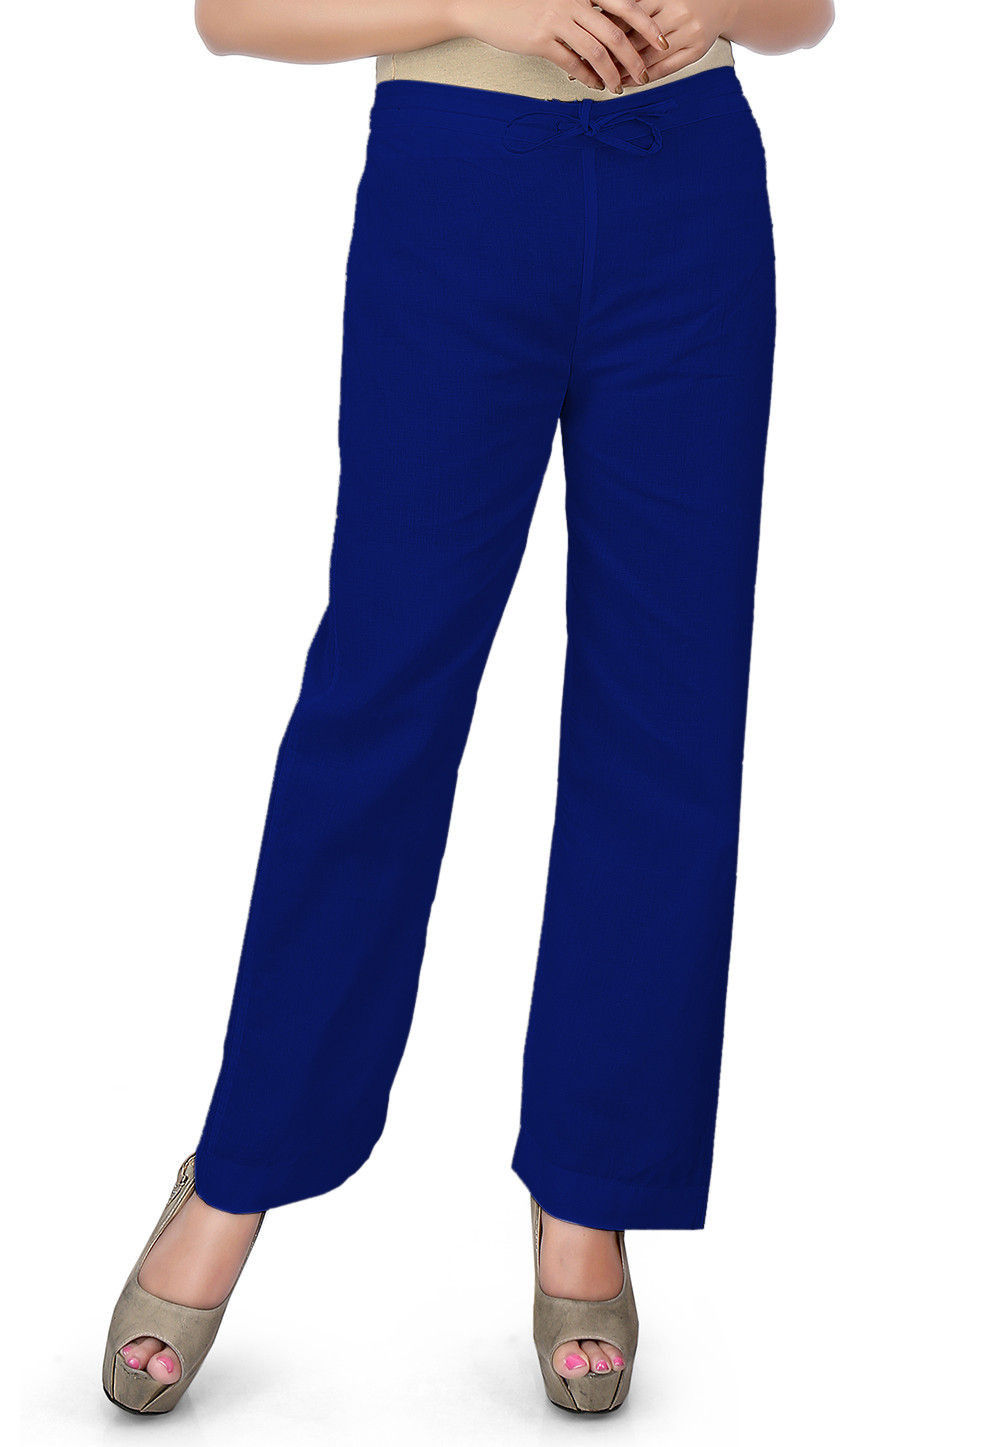 Solid Color Cotton Pant in Royal Blue